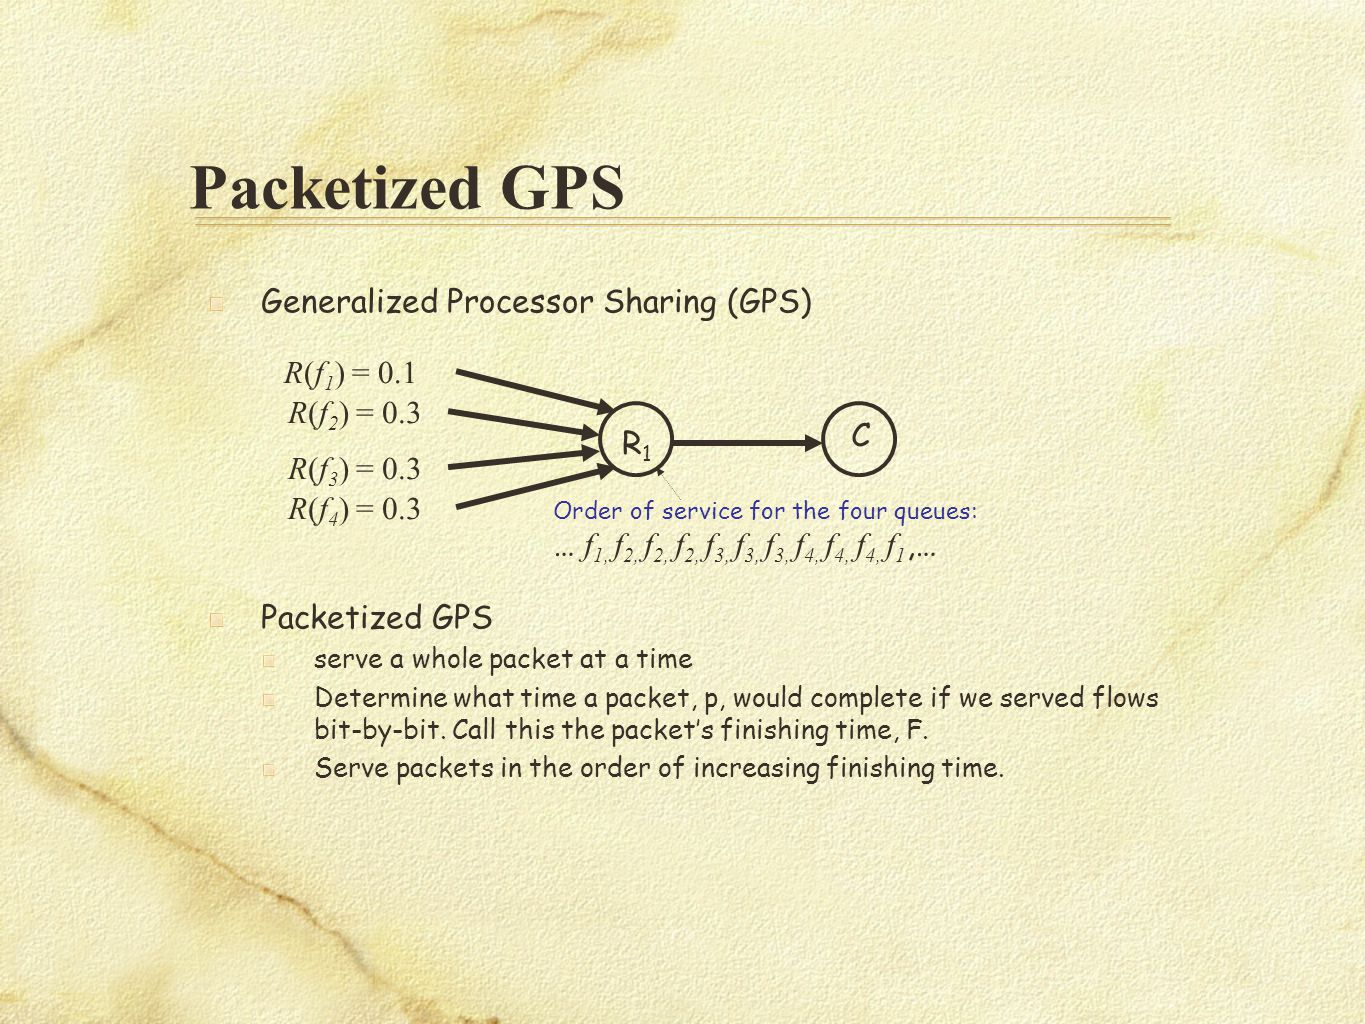 Packetized GPS R(f 1 ) = 0.1 R(f 3 ) = 0.3 R1R1 C R(f 4 ) = 0.3 R(f 2 ) = 0.3 Order of service for the four queues: … f 1, f 2, f 2, f 2, f 3, f 3, f 3, f 4, f 4, f 4, f 1,… Generalized Processor Sharing (GPS) Packetized GPS serve a whole packet at a time Determine what time a packet, p, would complete if we served flows bit-by-bit.